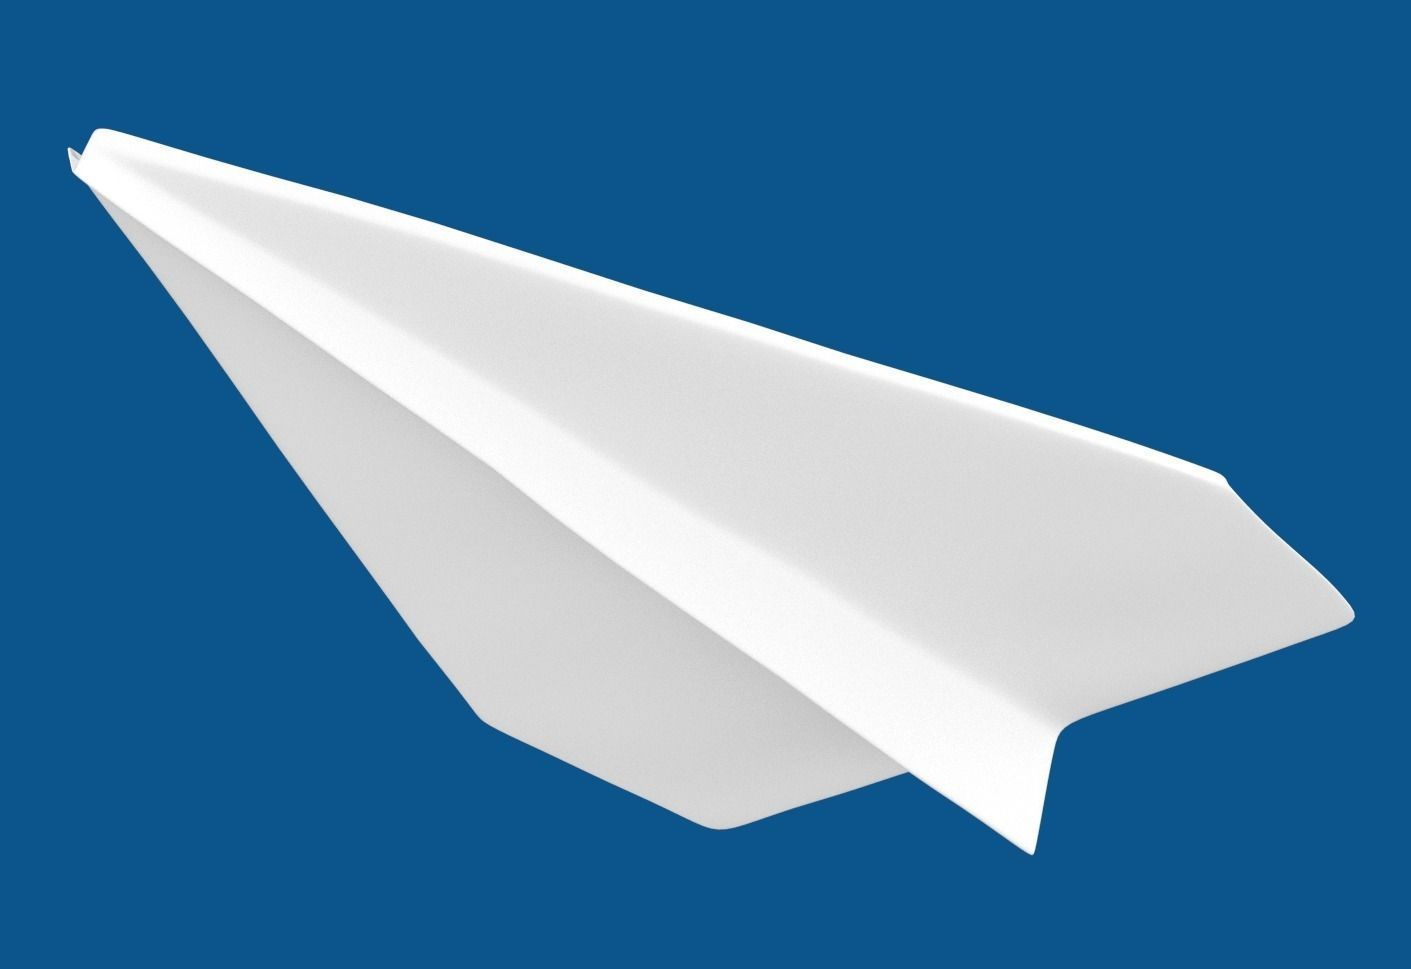 3d paper airplane models « Browser Airplane games - Play Free Games